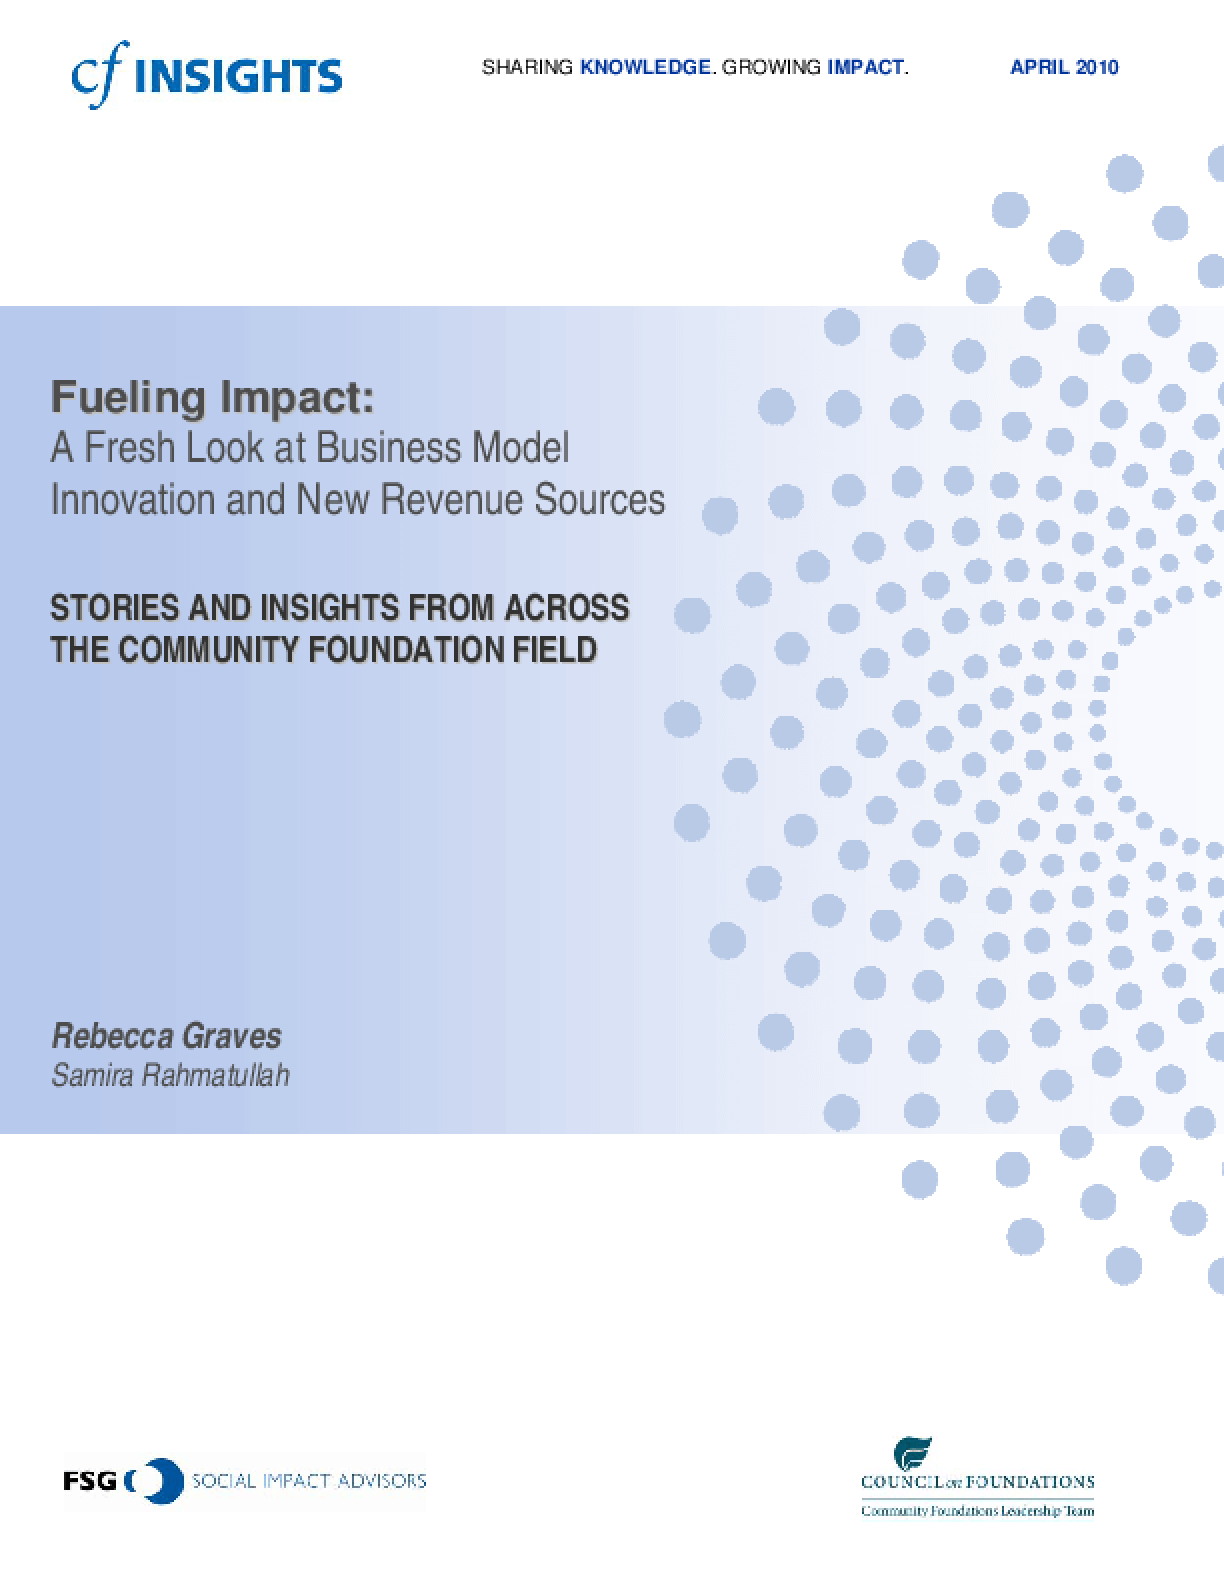 Fueling Impact: A Fresh Look at Business Model Innovation and New Revenue Sources